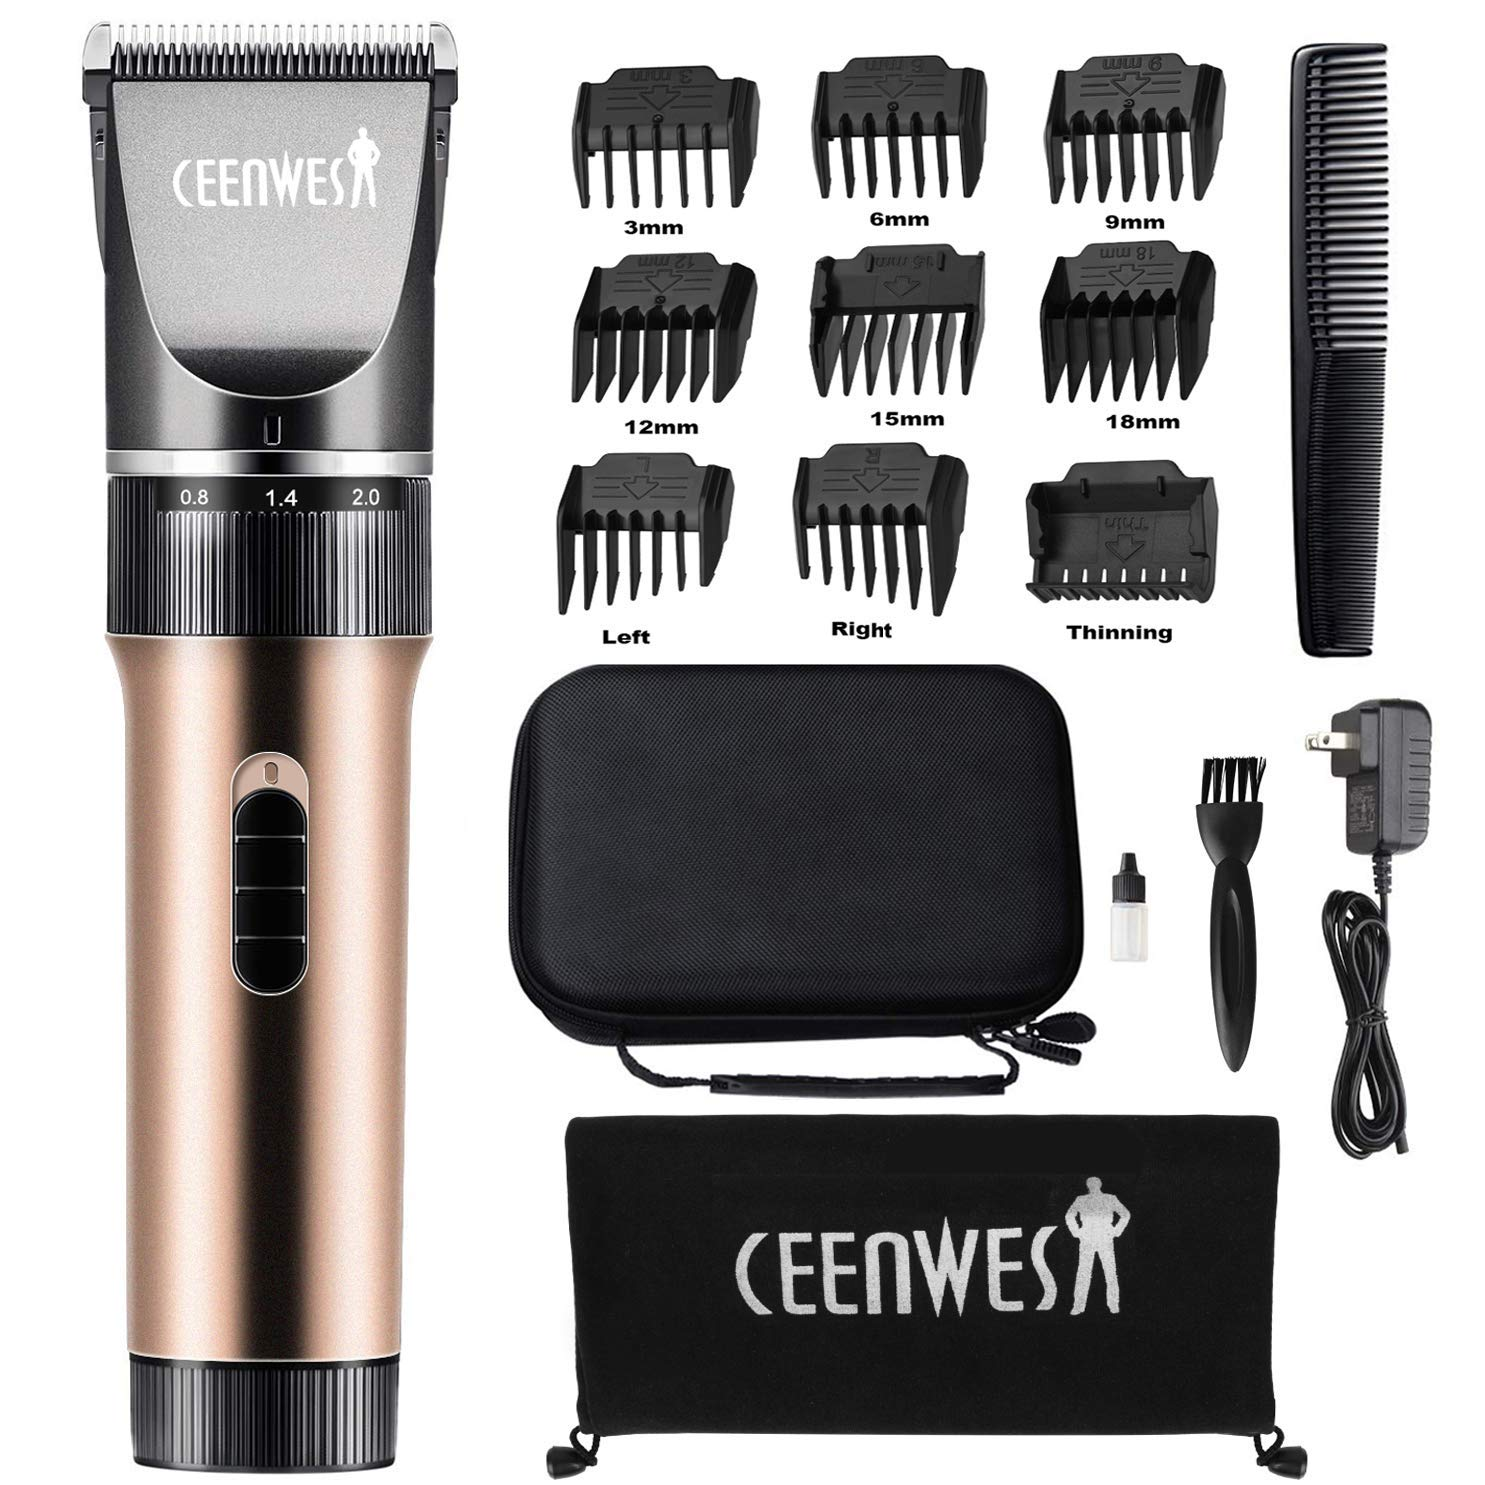 Ceenwes Hair Clippers Cordless Quiet Hair Trimmers Rechargeable Body Hair Removal Machine with 9 Combs Carrying Bag for Women Father Mother Baby